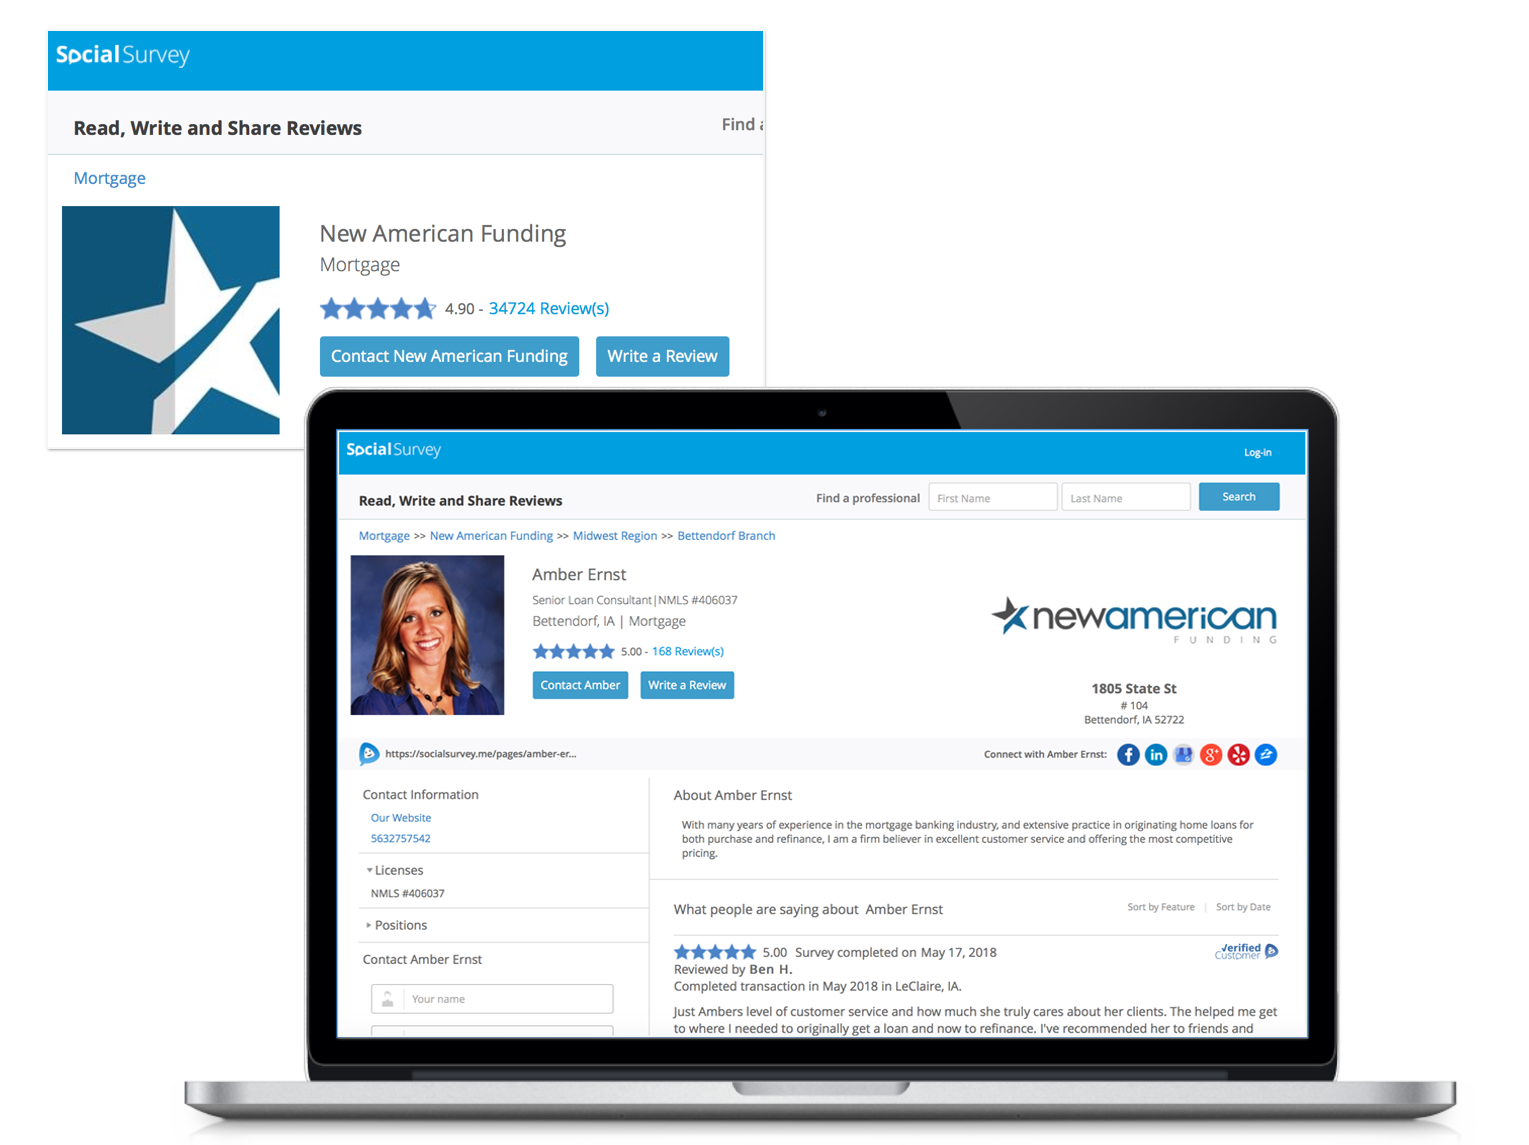 we create company region location and agent profile pages to power your reviews online and drive traffic trust and new business